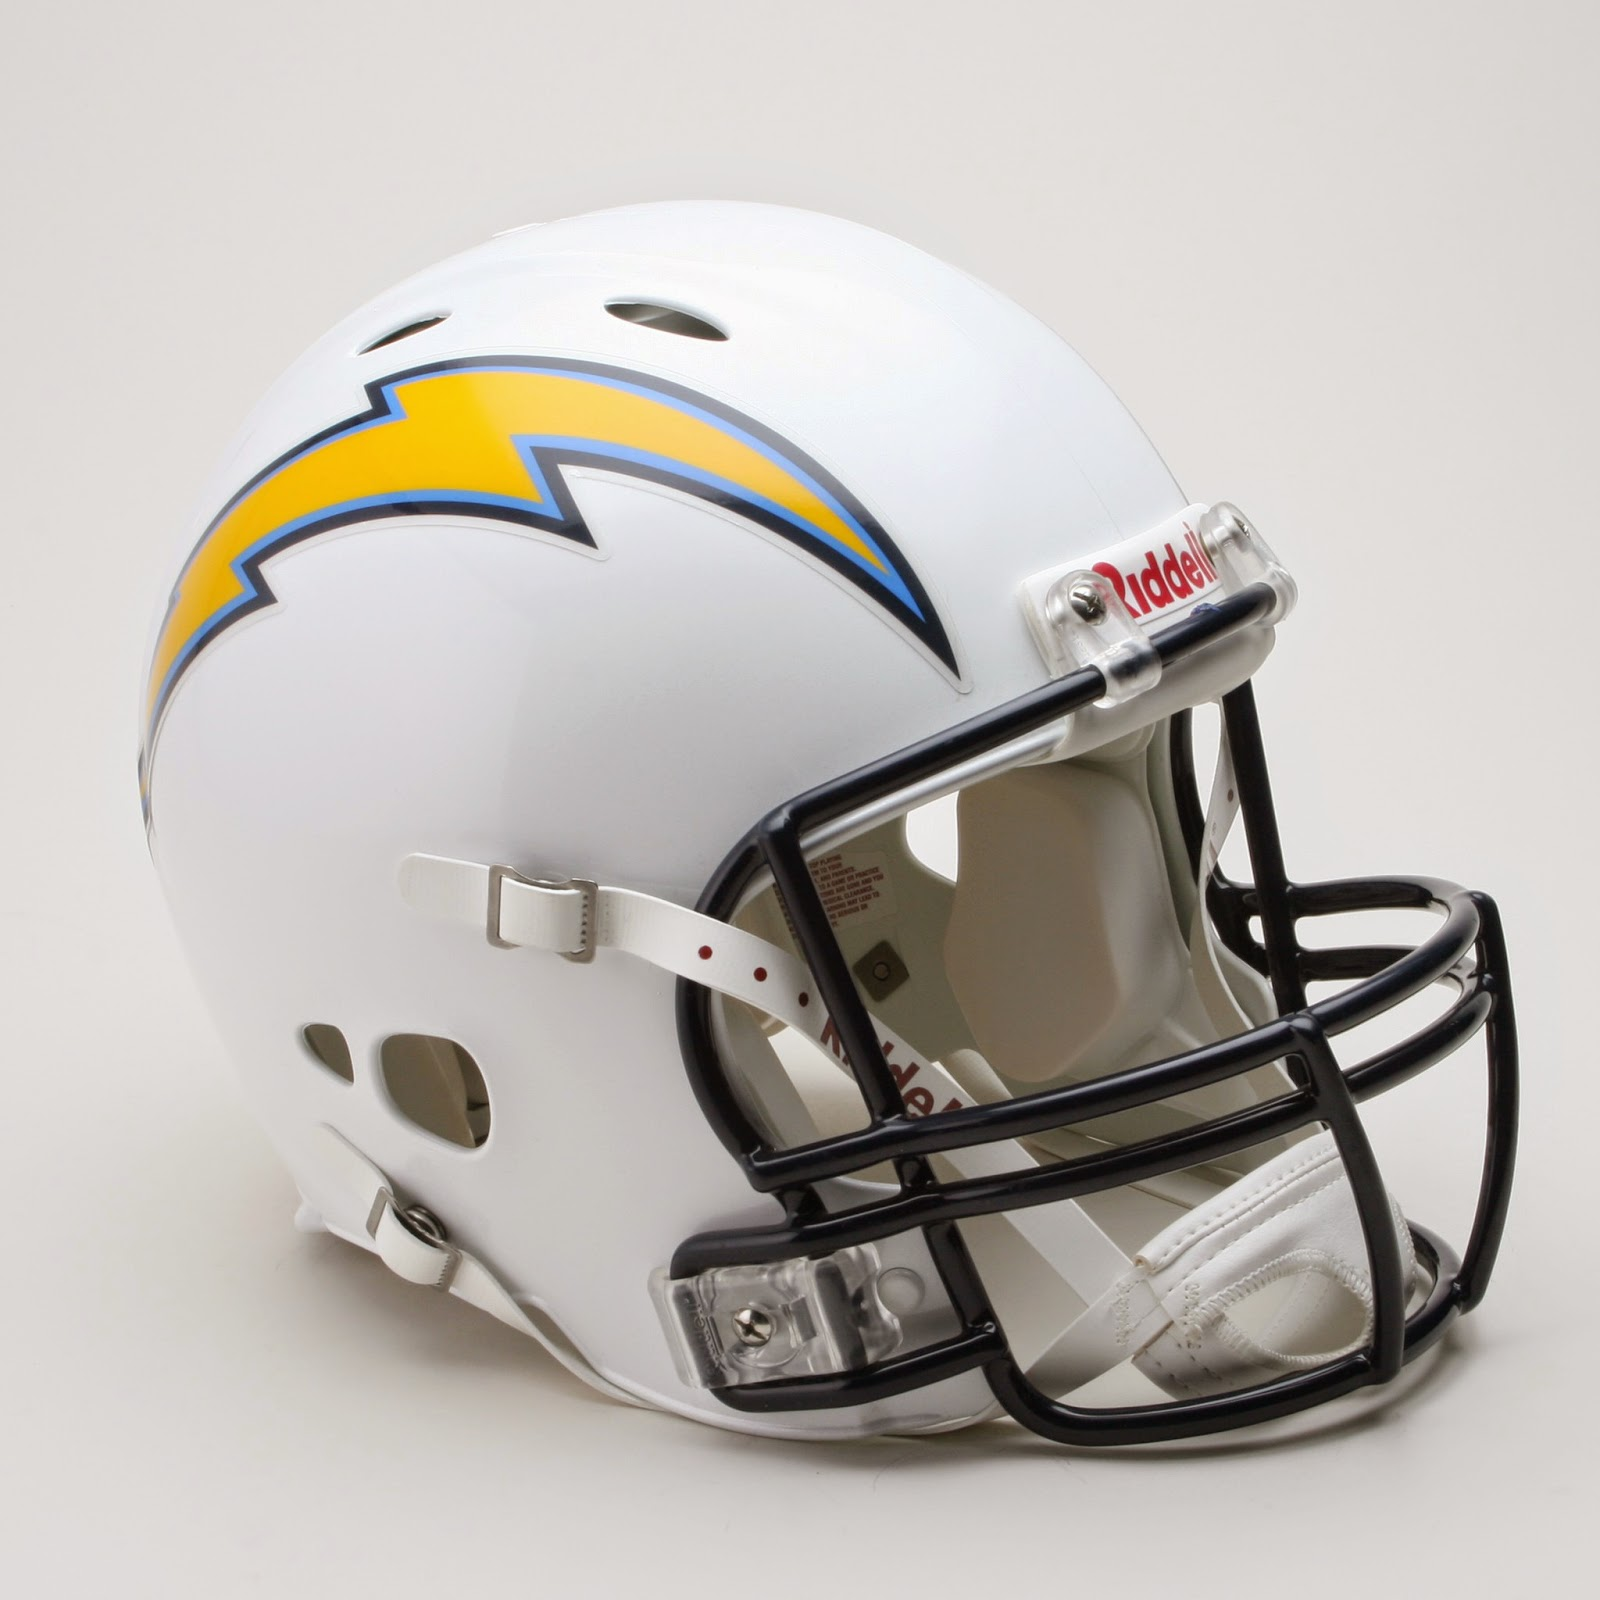 San Diego Chargers Depth Chart 2013: Heftyinfo: 2014 NFL PREVIEW